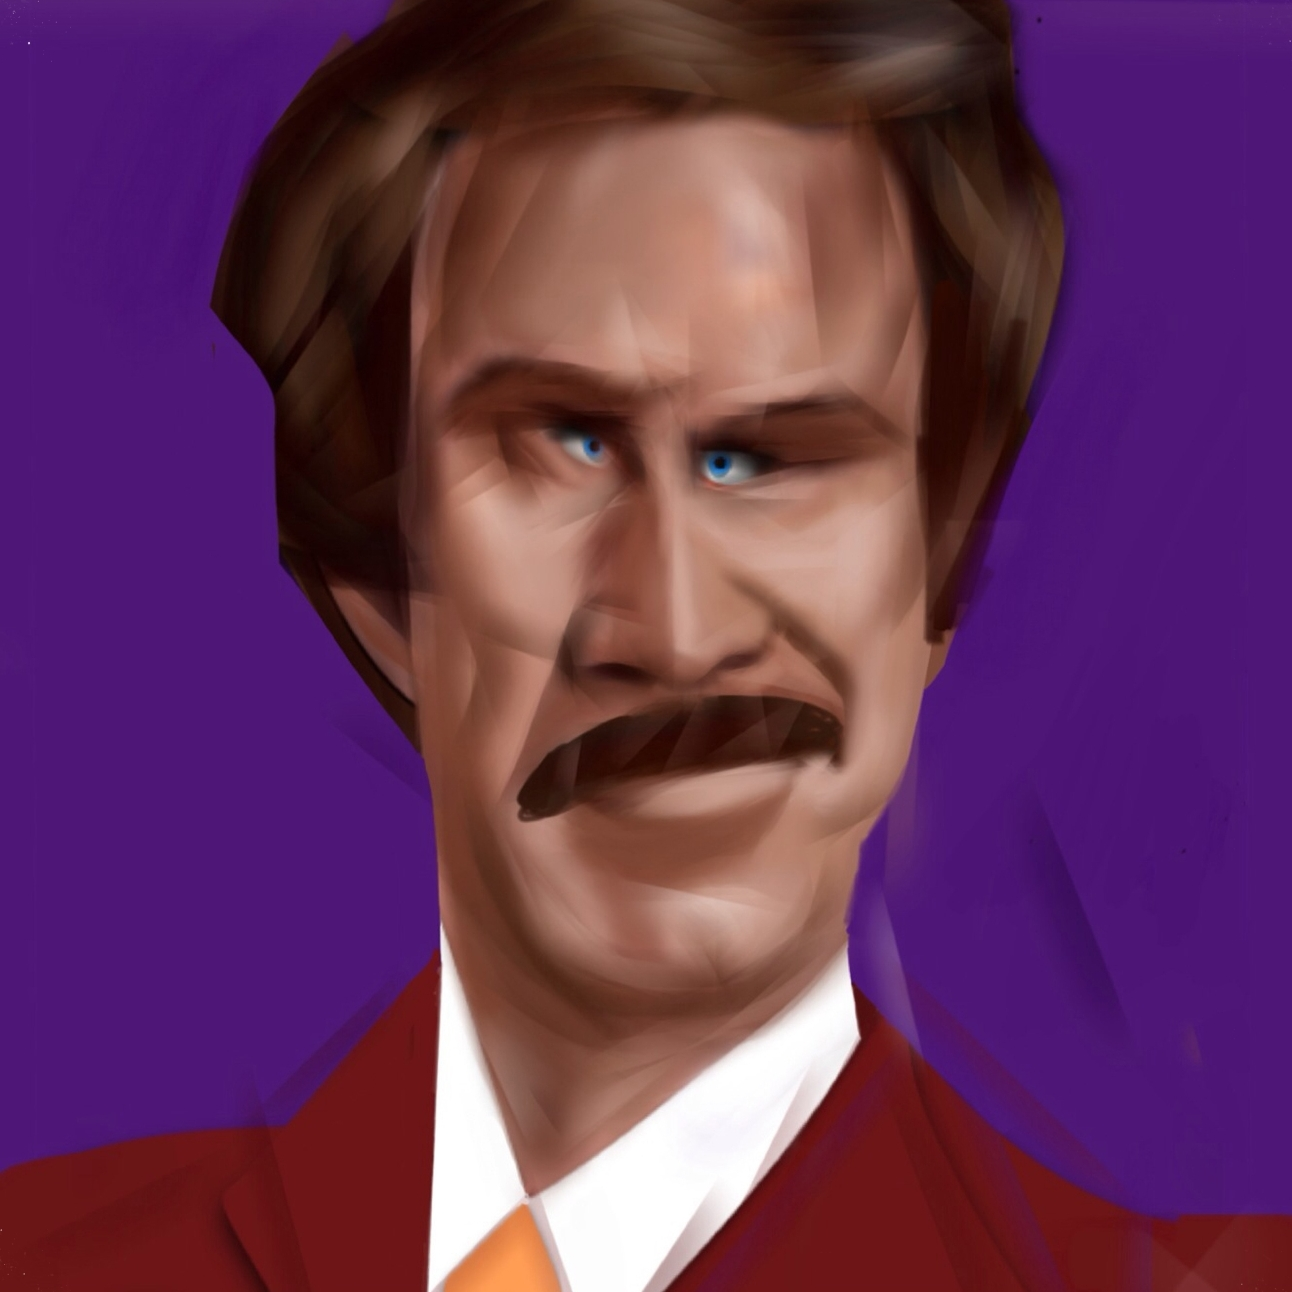 """Will Ferrel, """"Ron Burgundy""""   'He had a voice that could make a wolverine purr and suits so fine they made Sinatra look like a hobo. In other words, Ron Burgundy was the balls.'"""